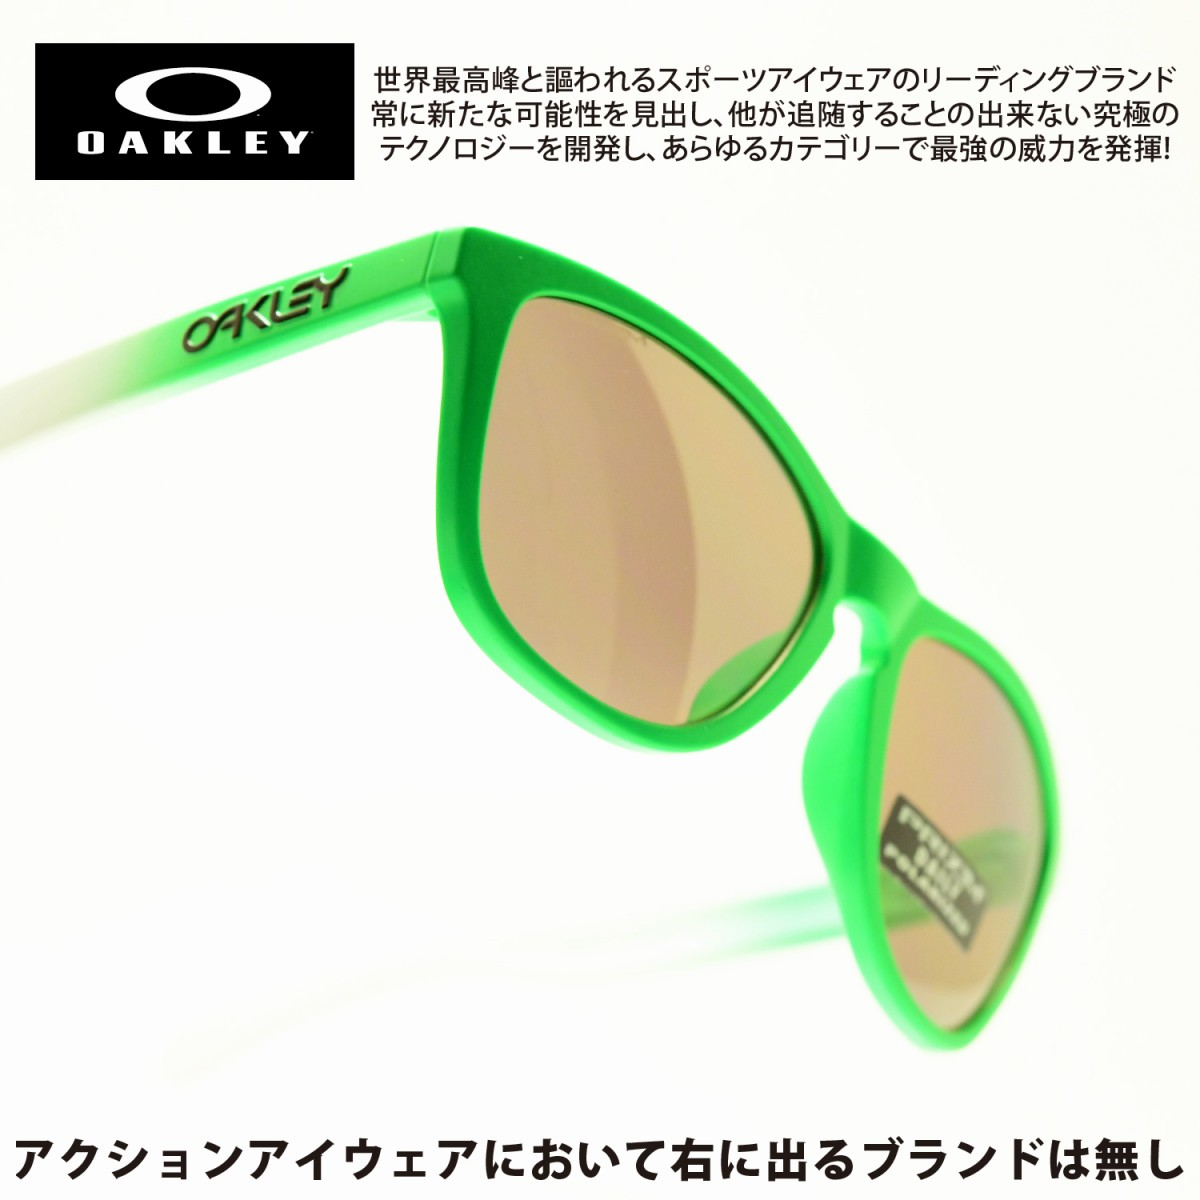 OAKLEY オークリーFROGSKINS フロッグスキン ASIAN FIT アジアンフィットGREEN FADE/PRIZM DAILY POLARIZED OO9245-37LIMITED EDITION